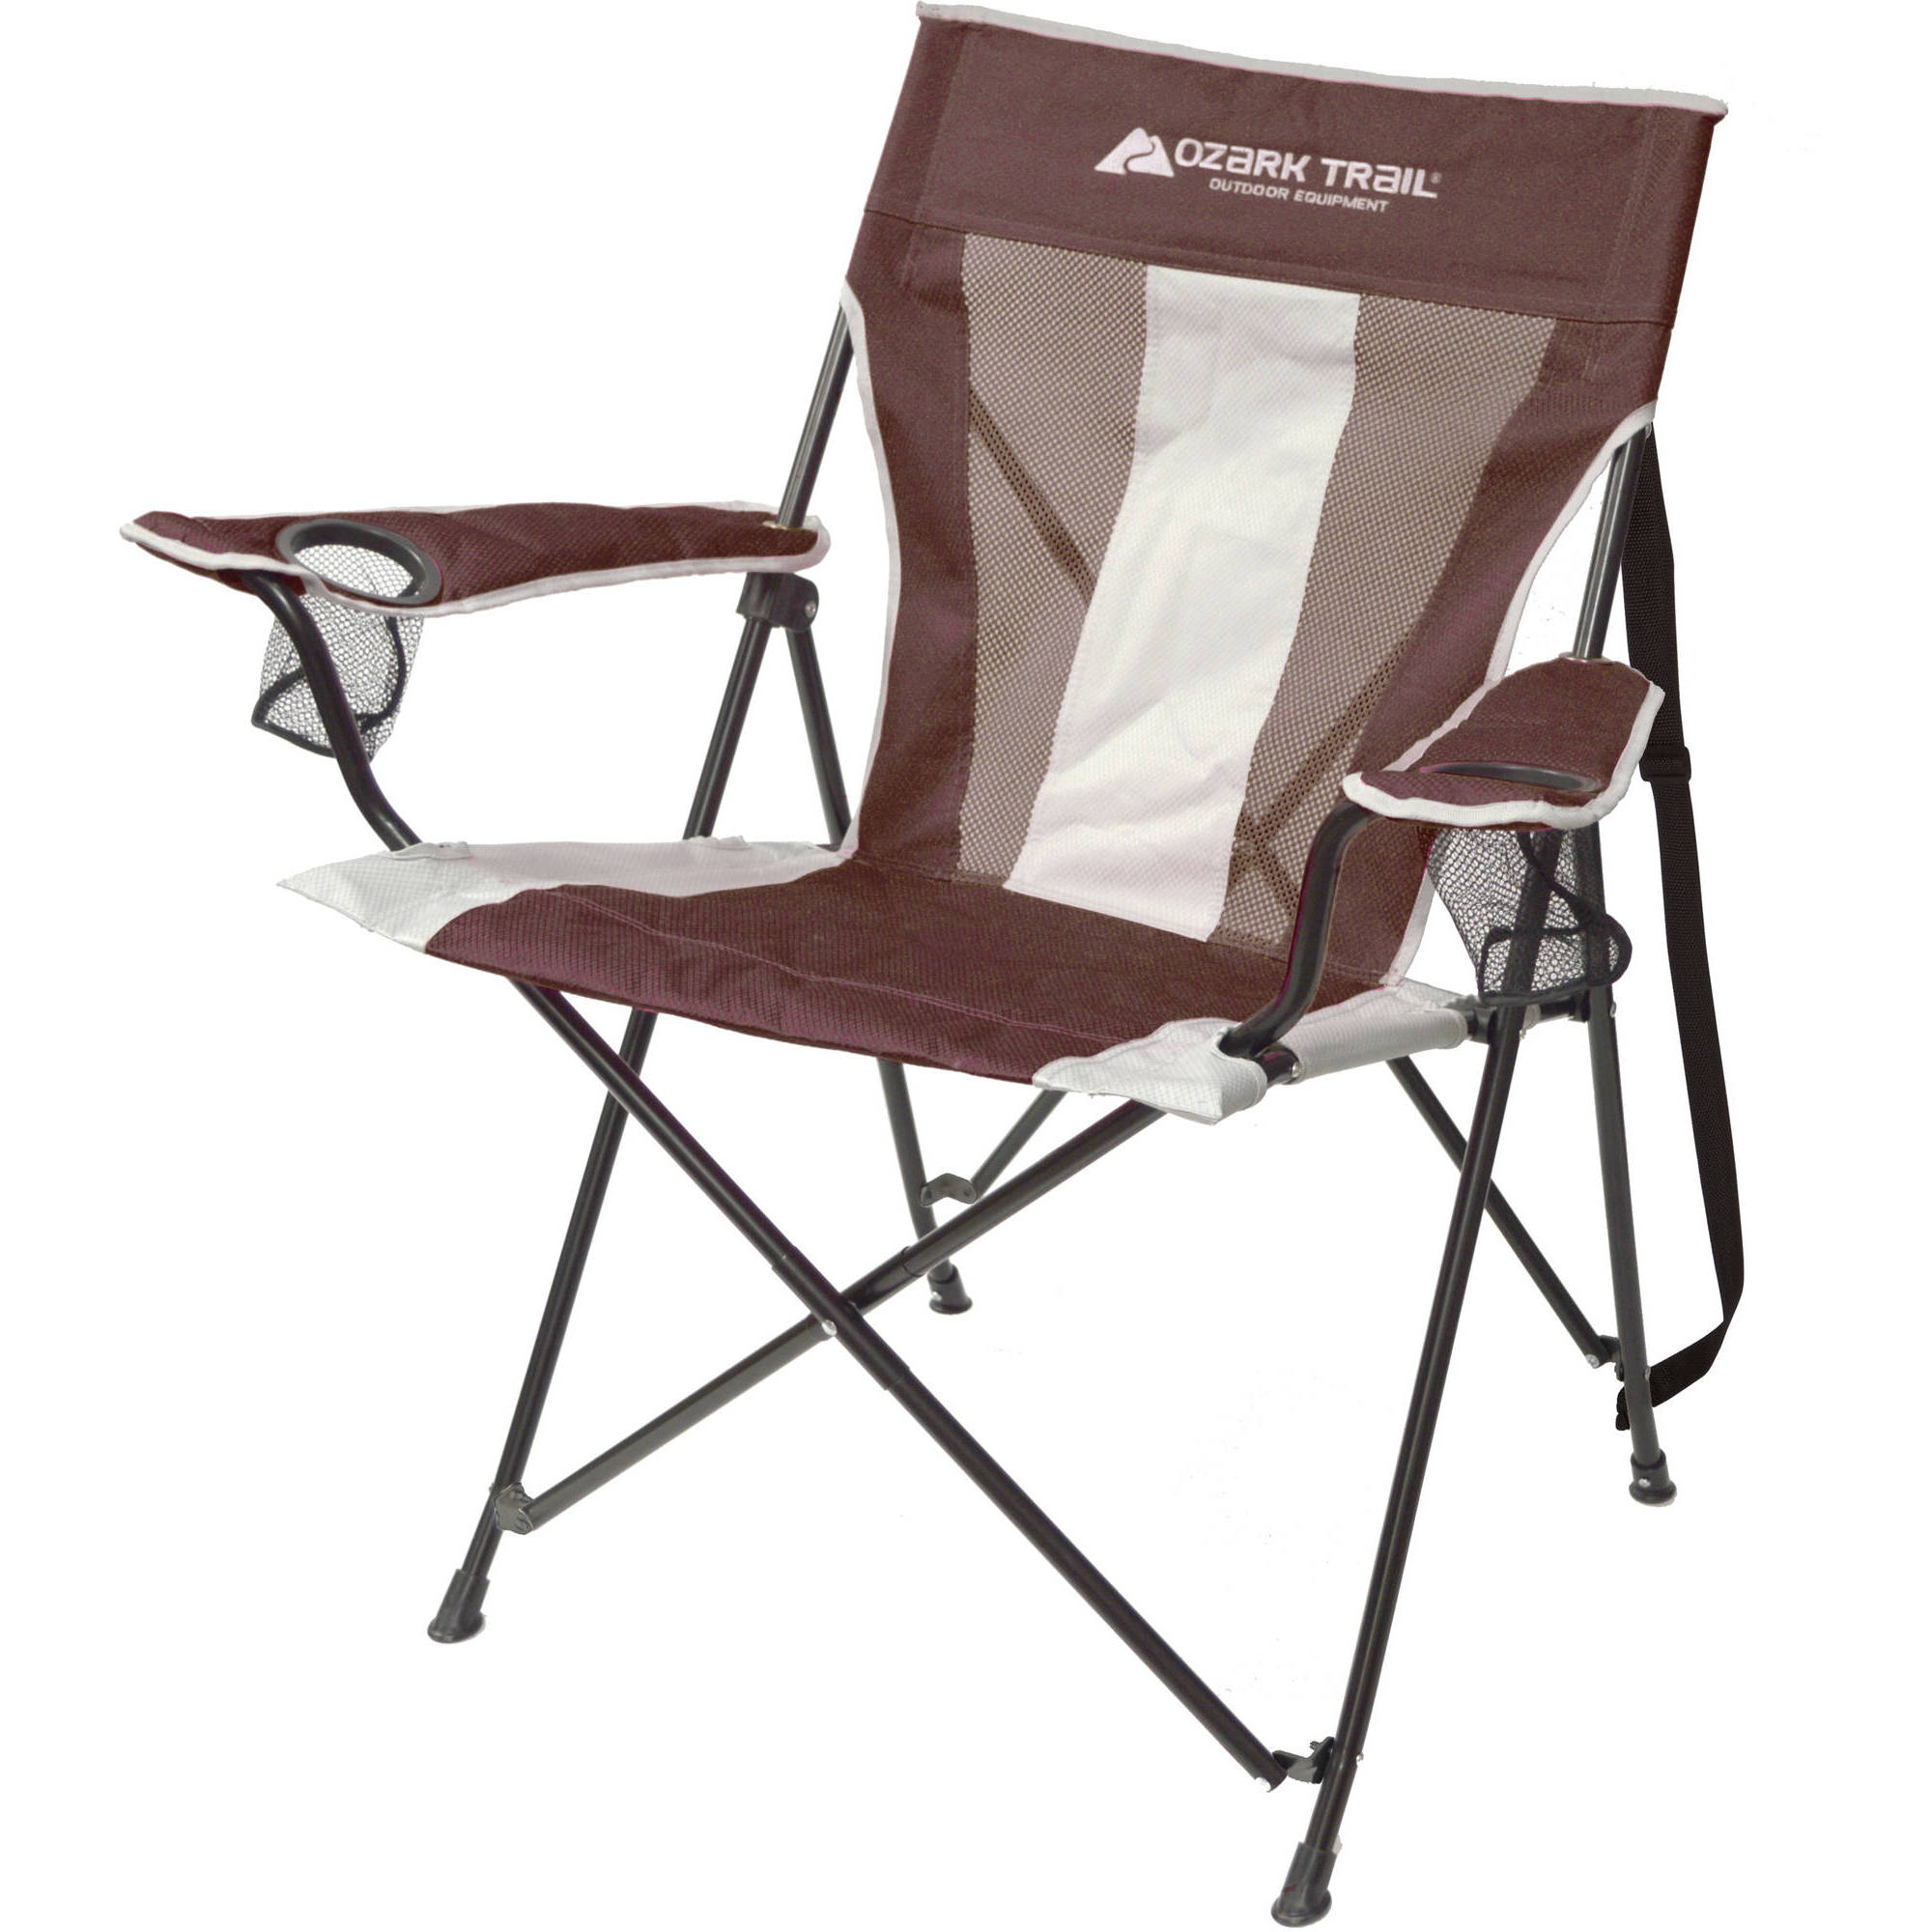 ozark trail oversized mesh chair zodiac design tension camp chair, brown with 2 cup holders - walmart.com